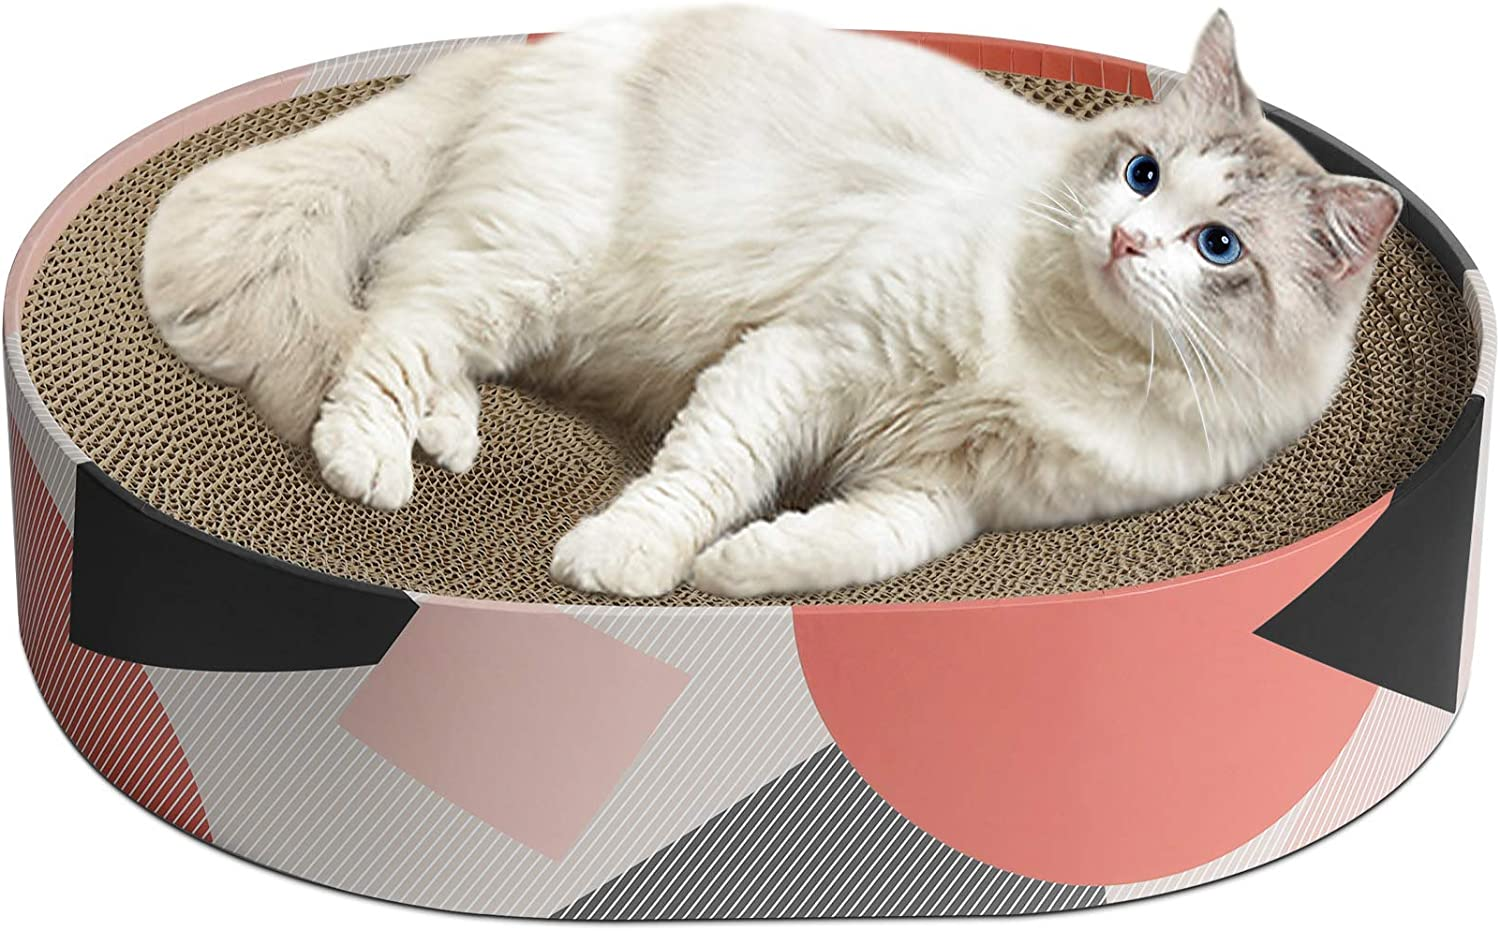 MSBC Cat Scratcher Cardboard, Oval Corrugated Scratch Pad, Cat Scratching Lounge Bed, Durable Recycle Board for Furniture Protection, Cat Scratcher Bowl, Kitten Kitty Training Toy